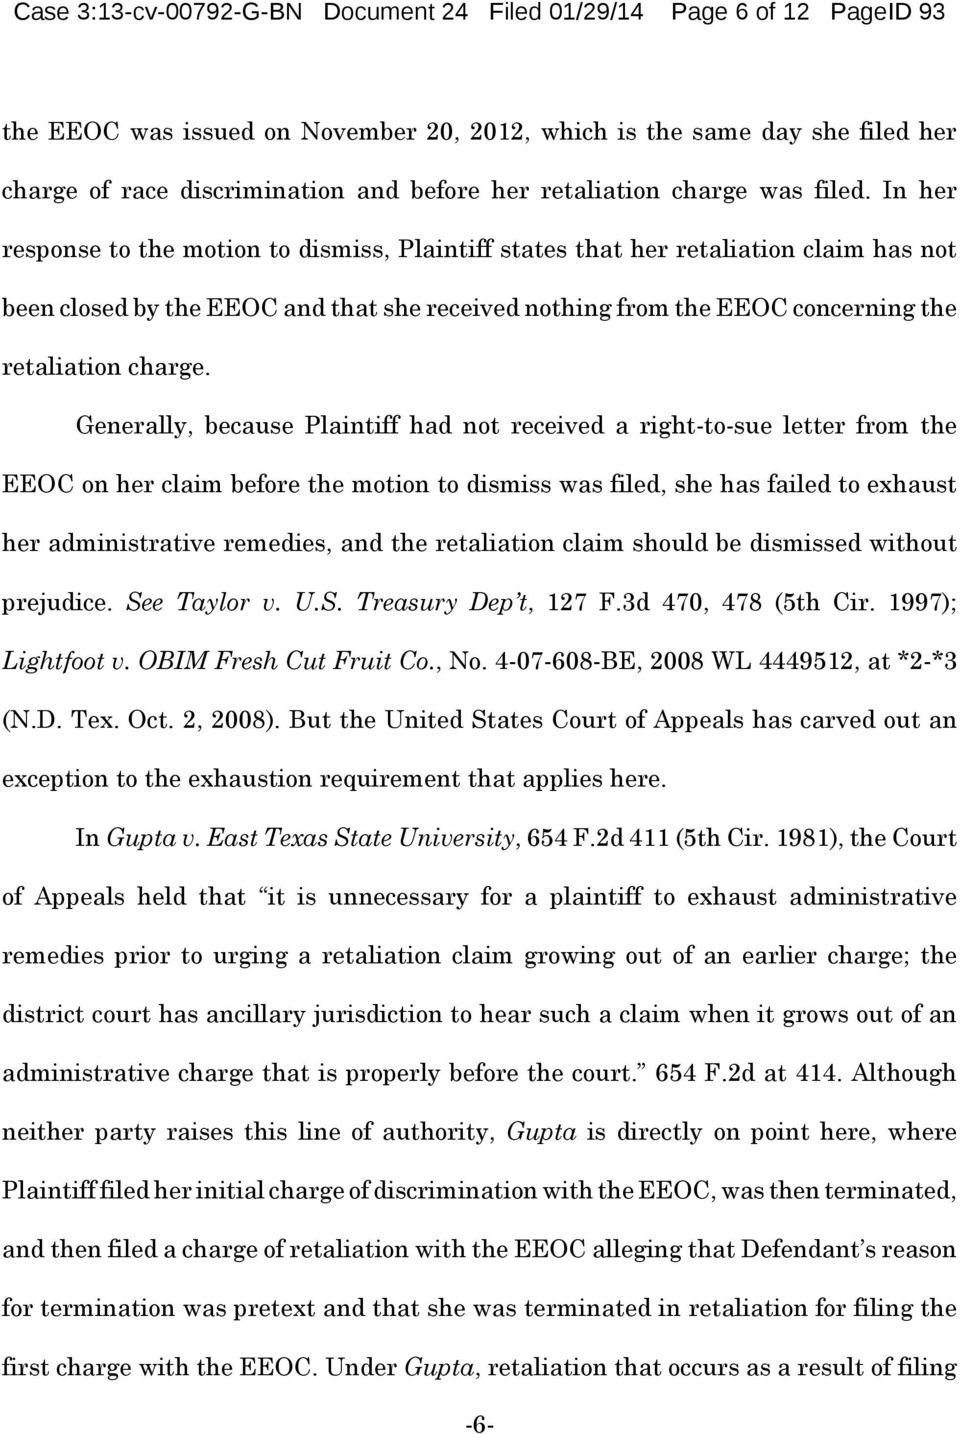 In her response to the motion to dismiss, Plaintiff states that her retaliation claim has not been closed by the EEOC and that she received nothing from the EEOC concerning the retaliation charge.